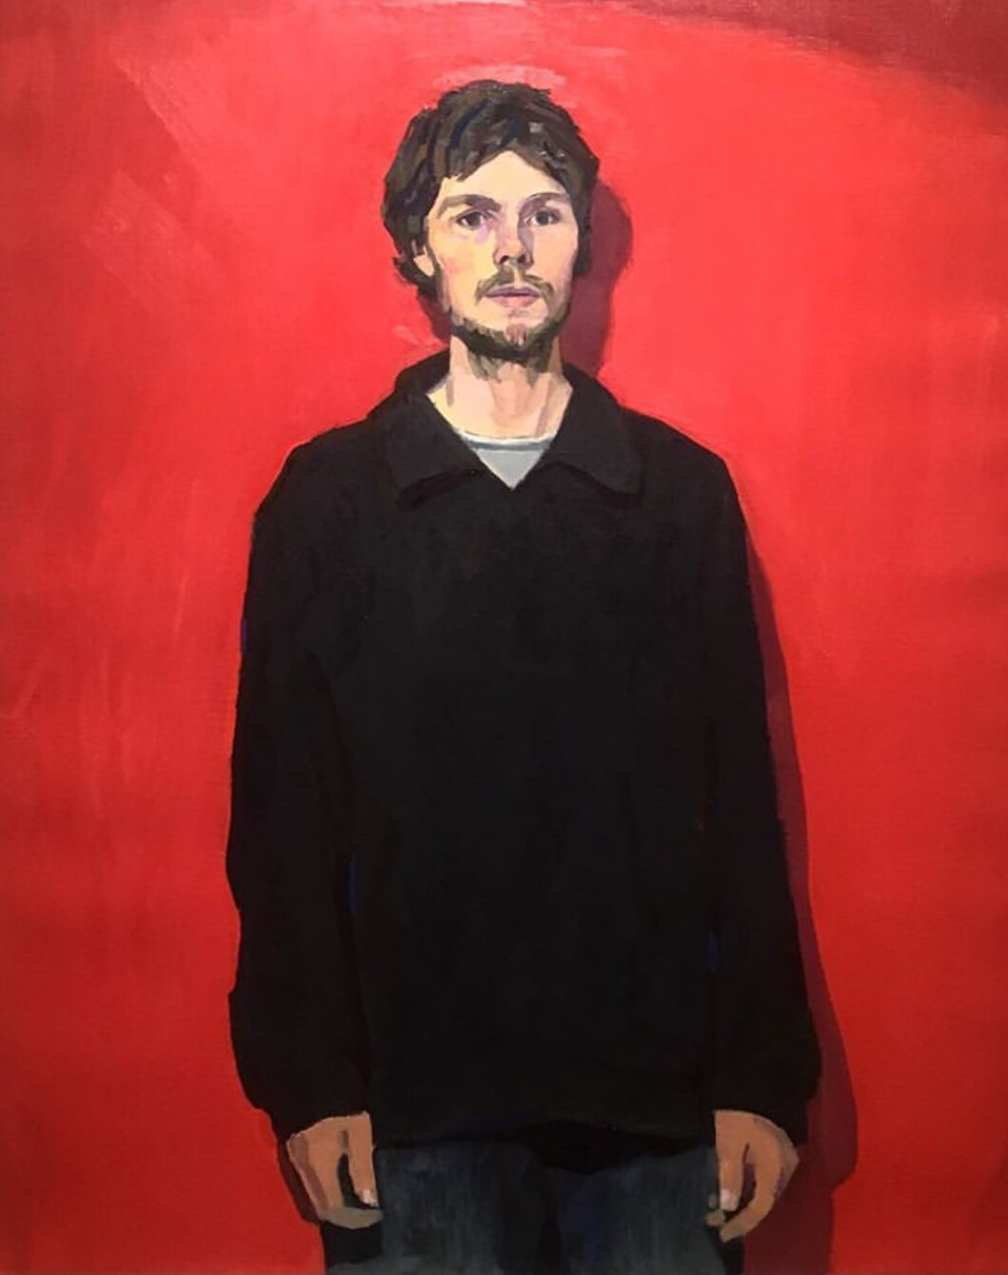 tyler-arnold-self-portrait-in-black-jacket-oil-on-linen-norma-bull-winner-2019